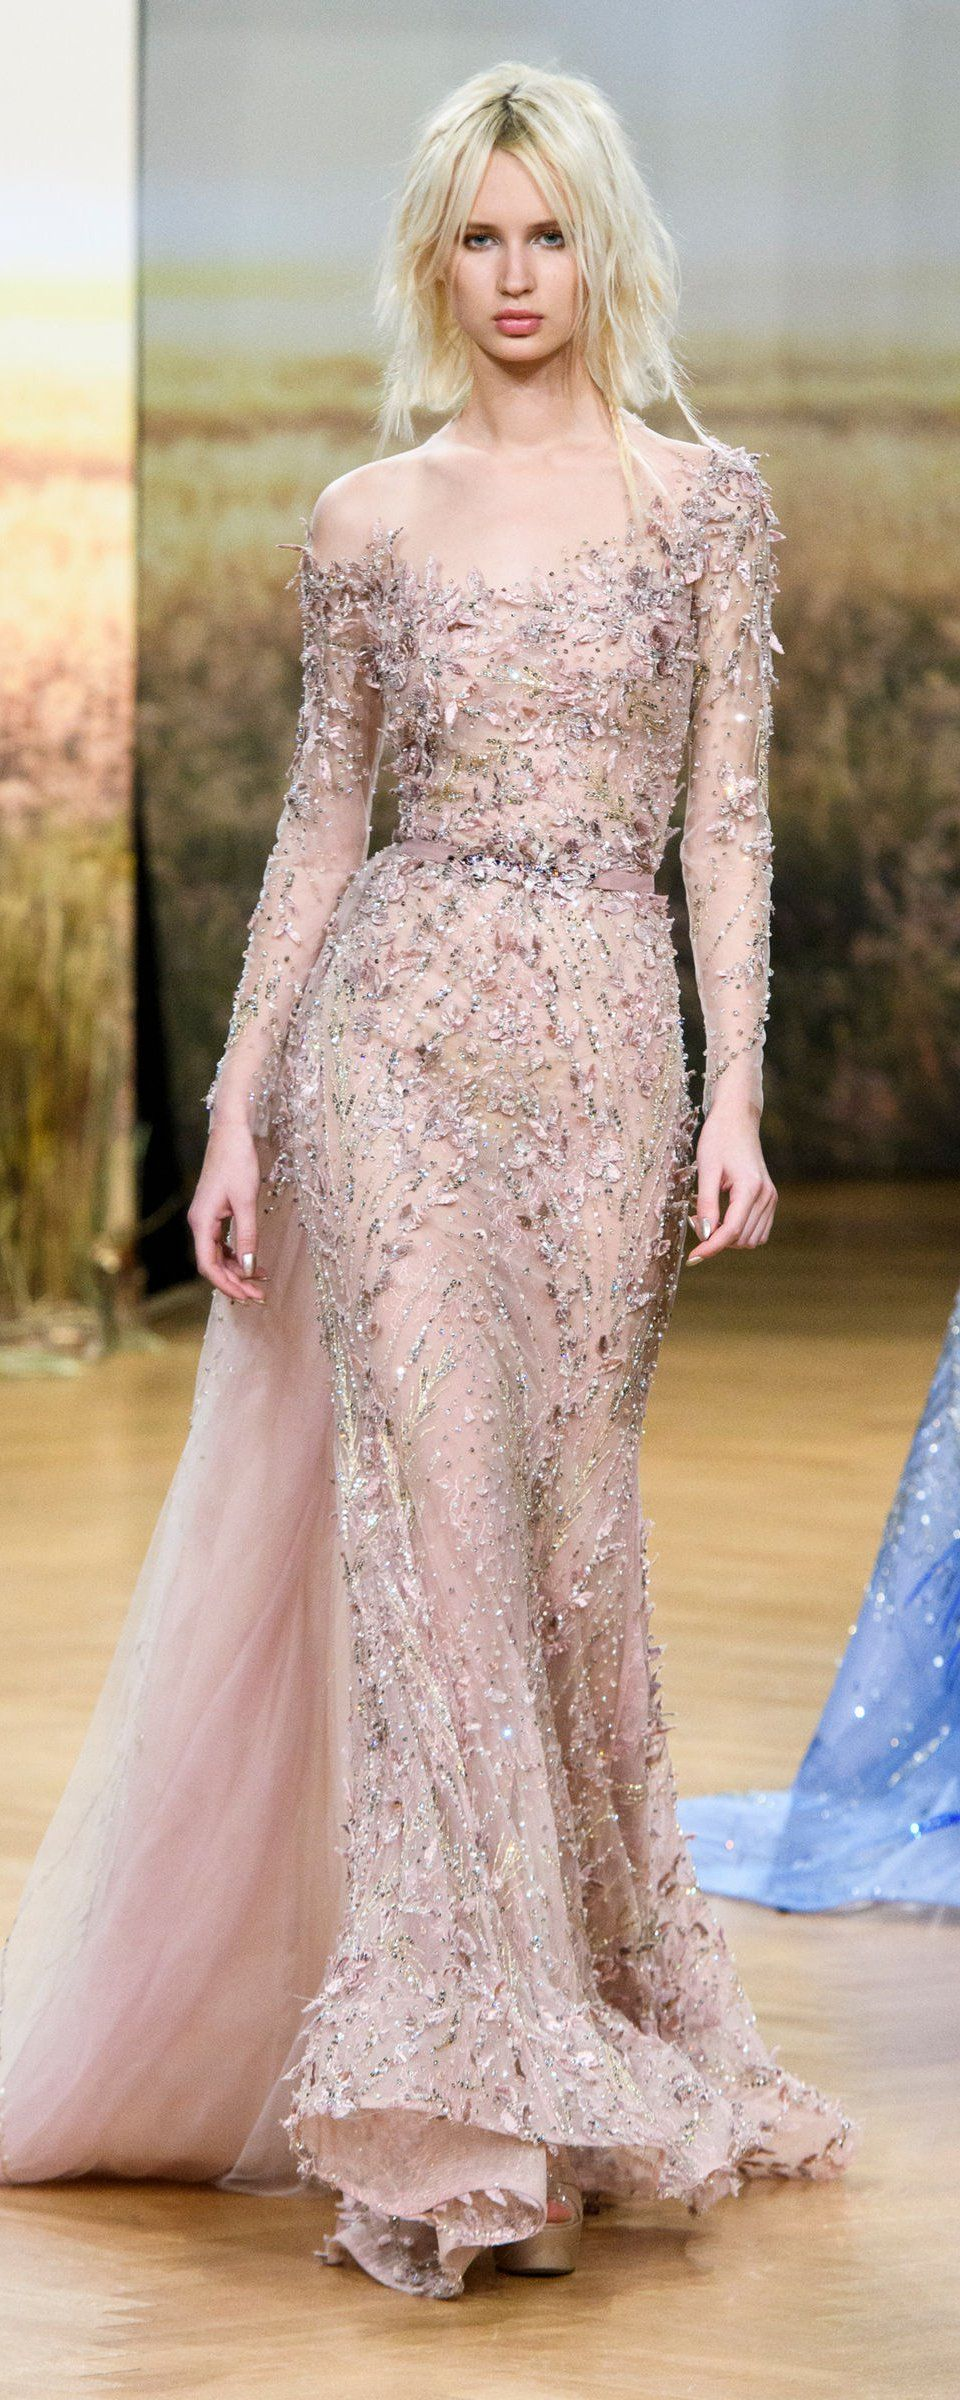 Ziad nakad springsummer couture